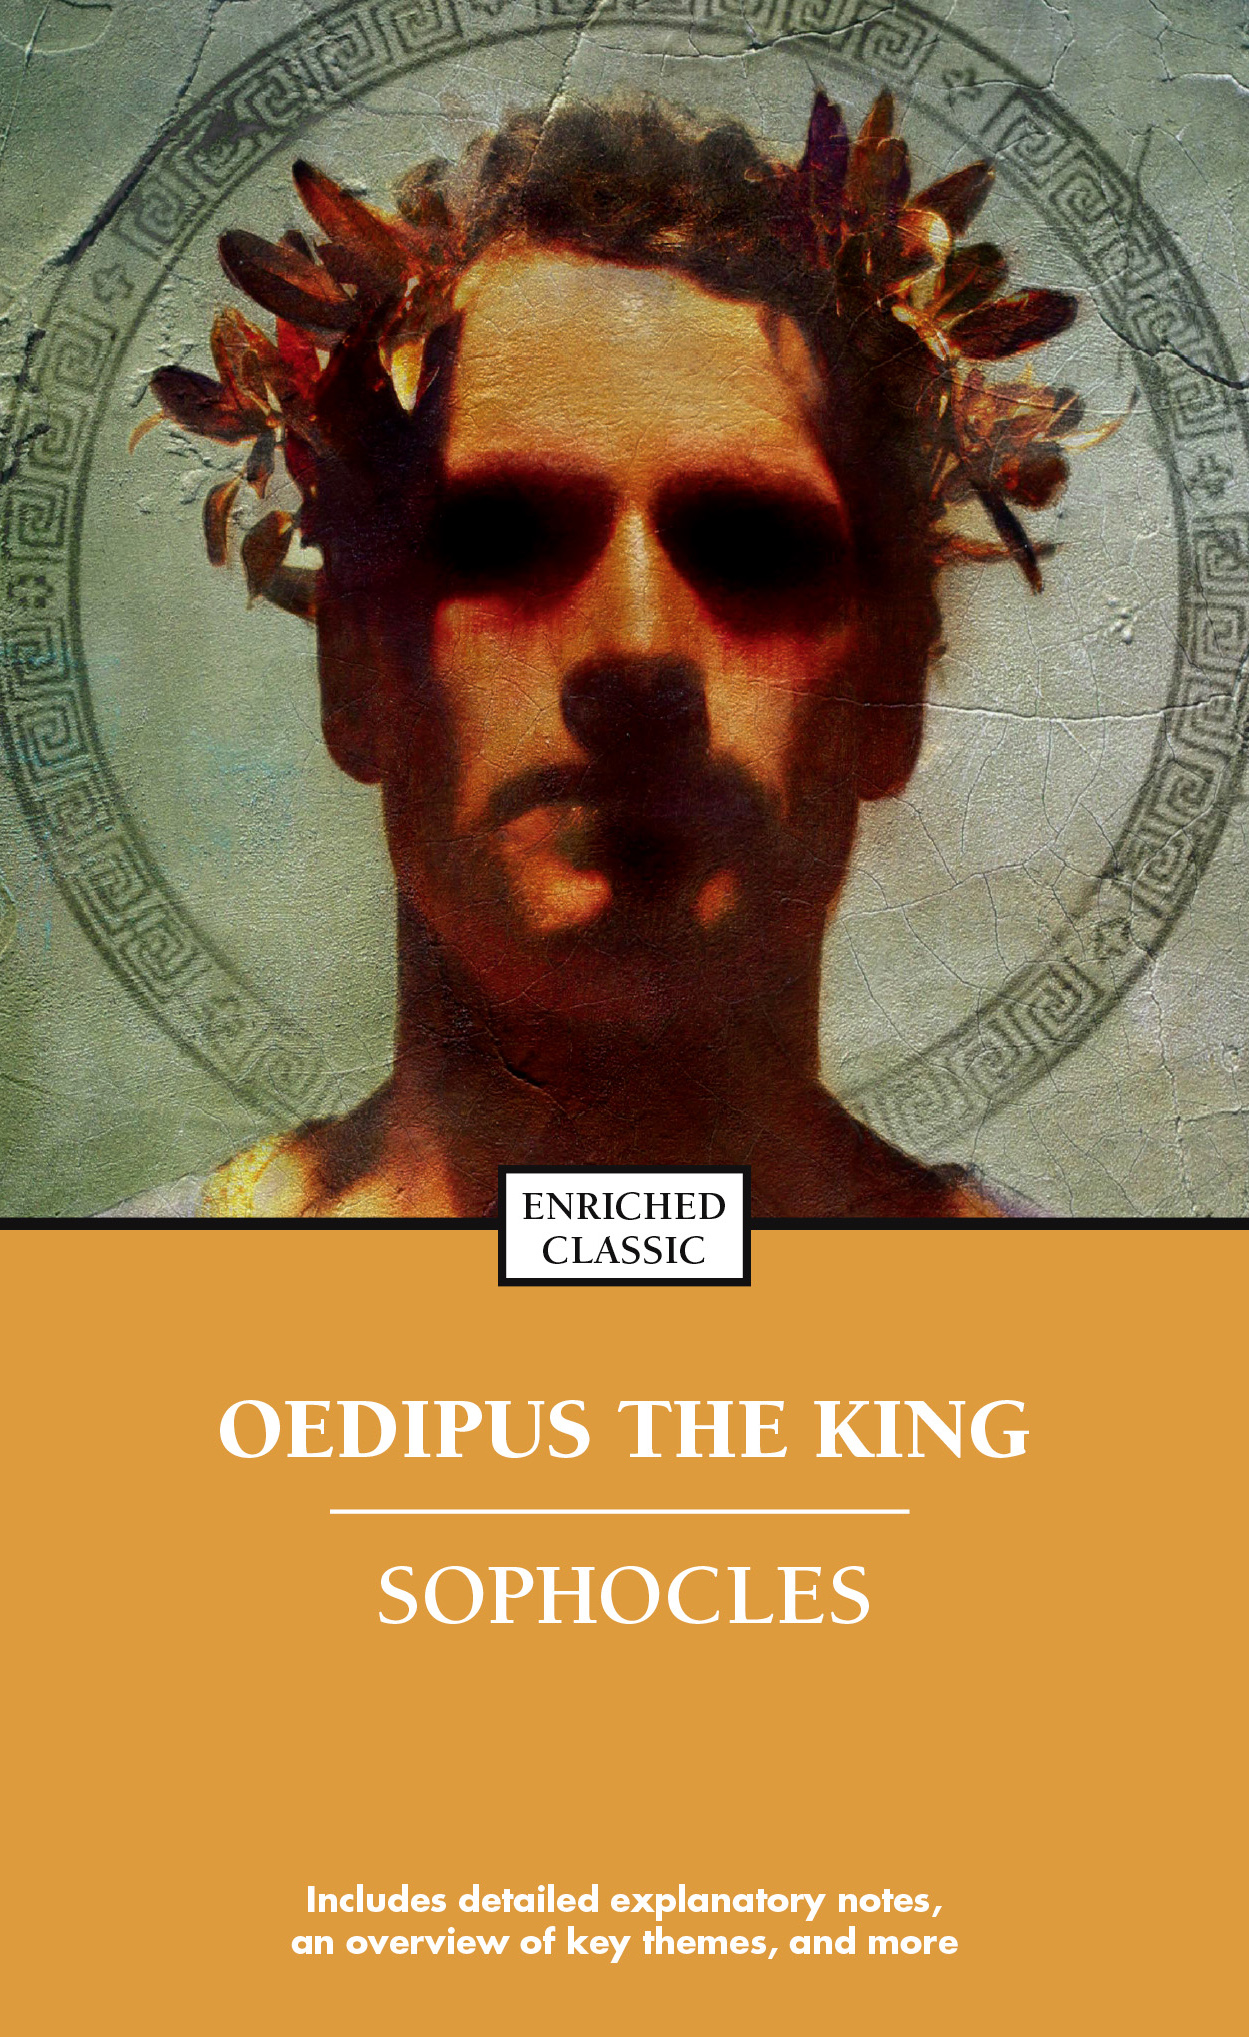 an analysis of theban trilogy by sophocles Louis bouwmeester as oedipus in a dutch production of an analysis of theban trilogy by sophocles oedipus rex son of oedipus.